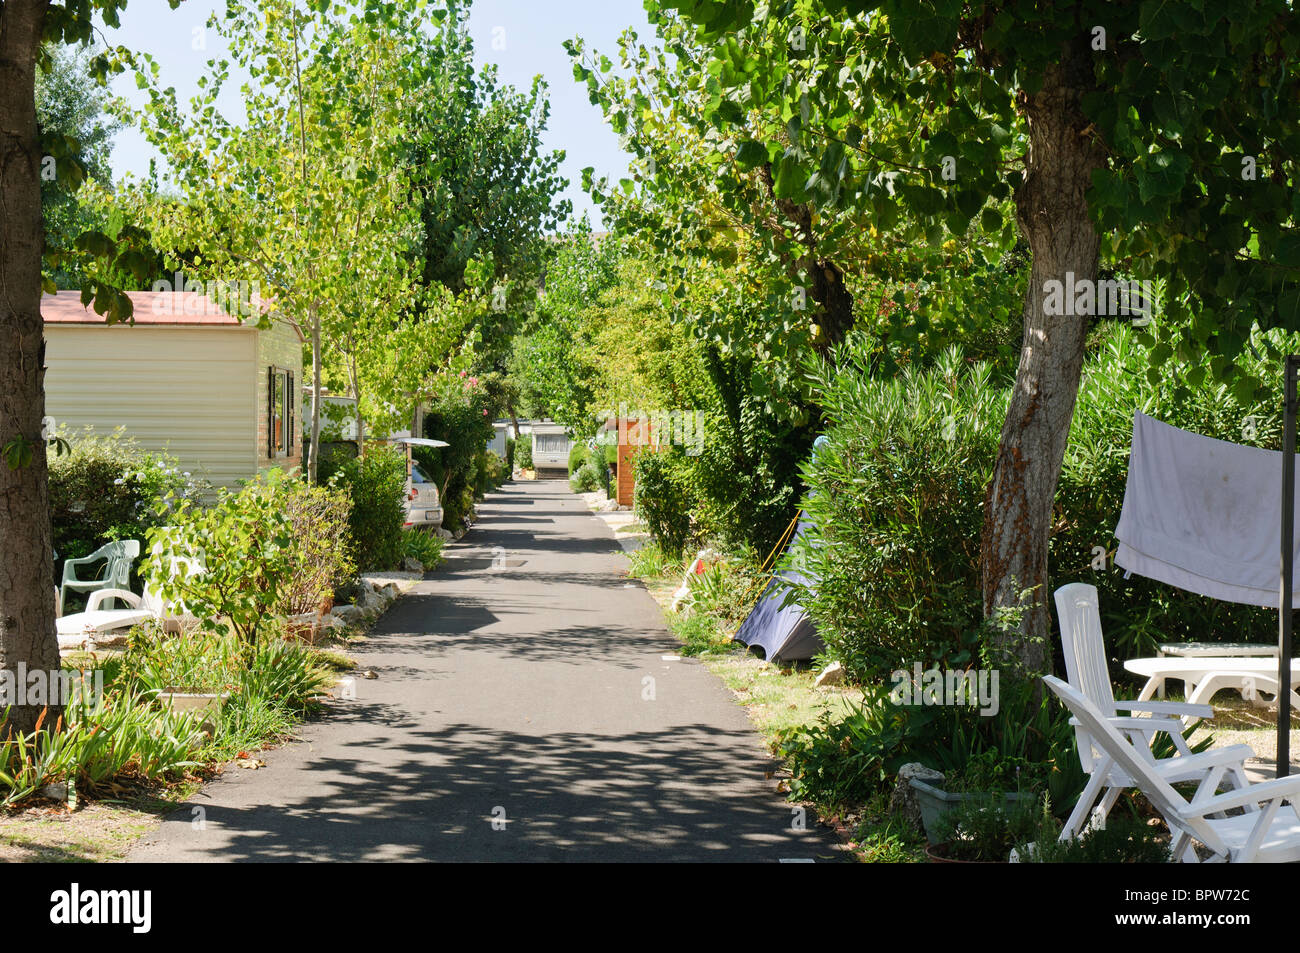 Caravan Park Stock Photos & Caravan Park Stock Images - Alamy